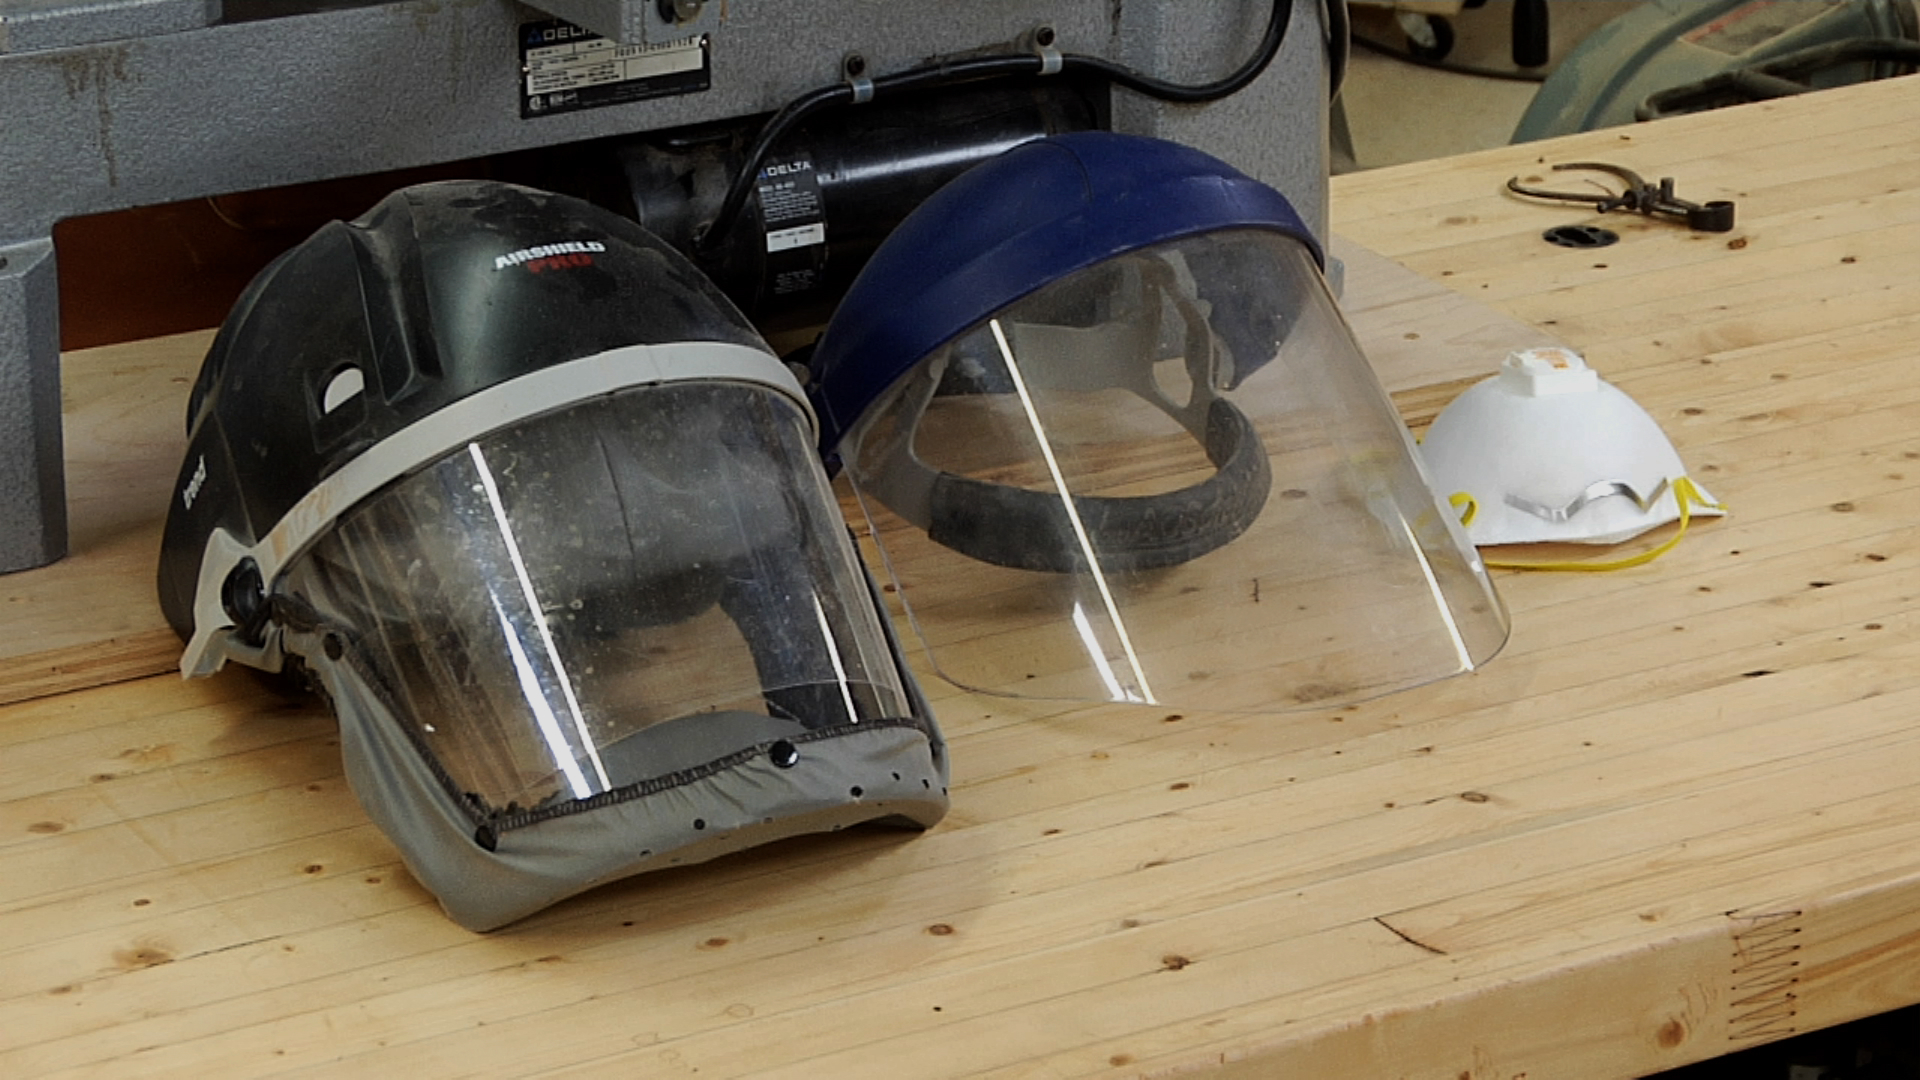 Sharpen Your Skills - Lathe Safety: Face Shield VS. Respirator